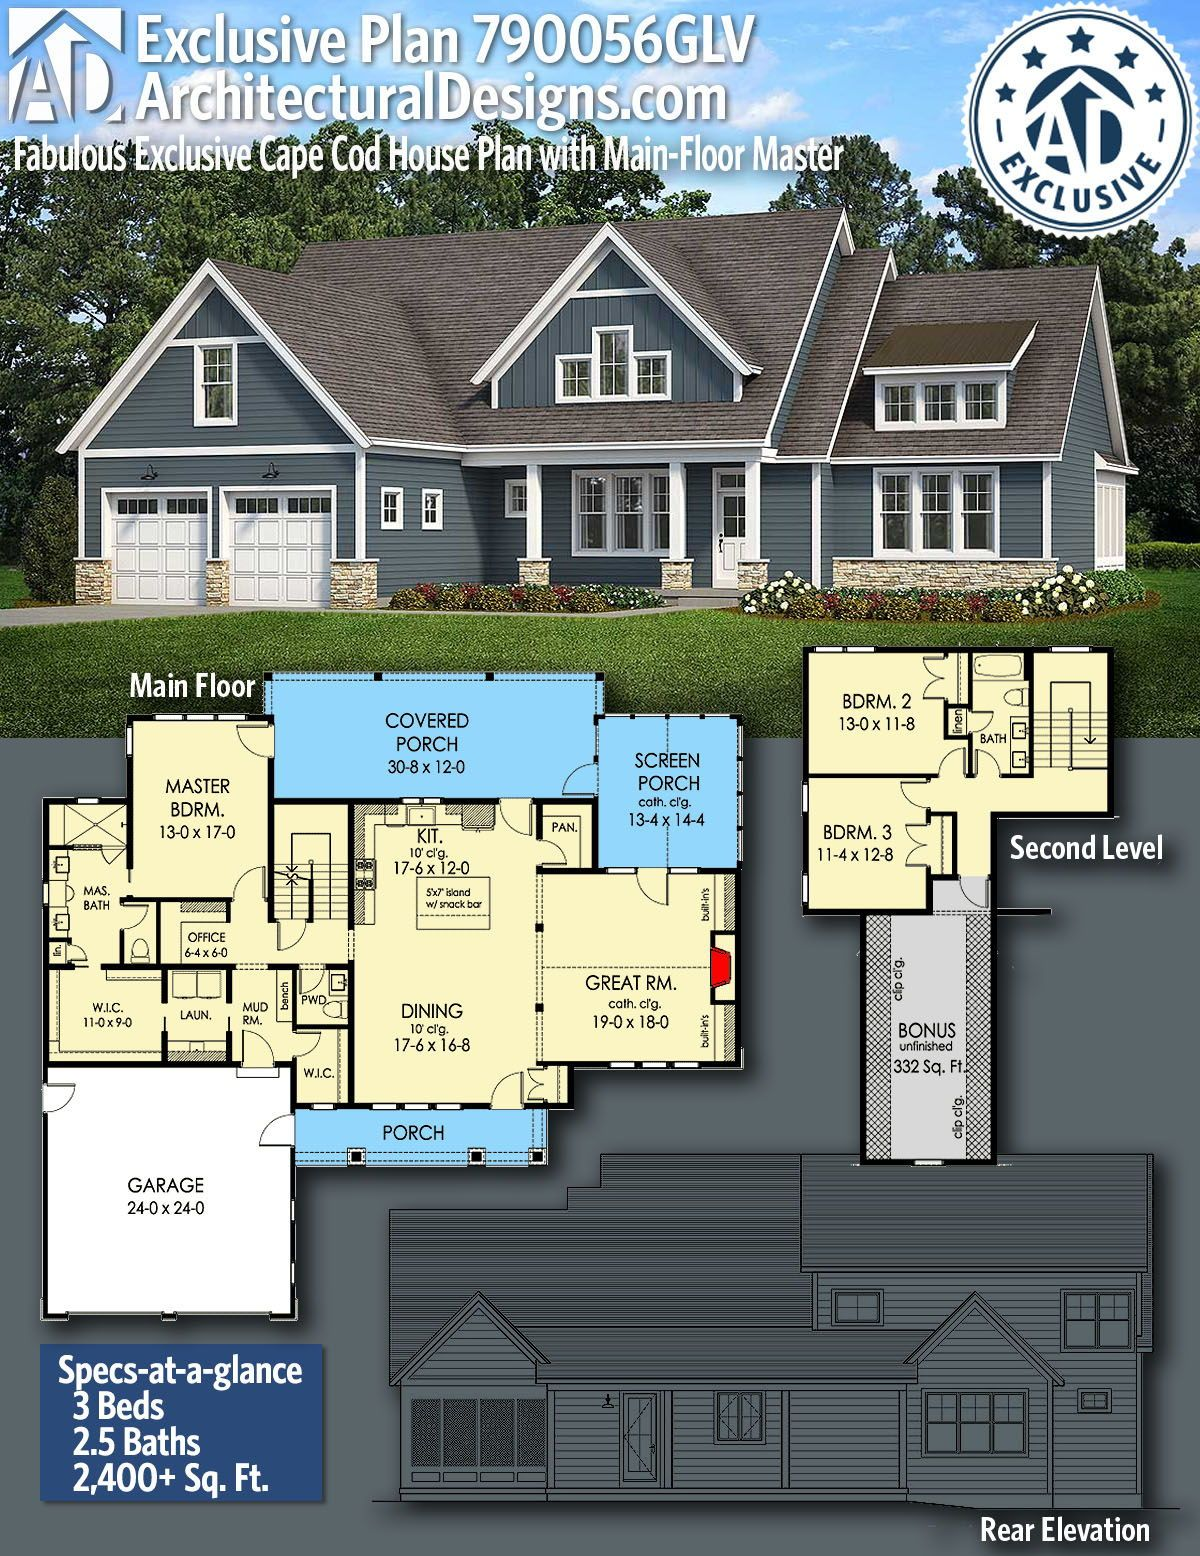 Plan 790056glv Fabulous Exclusive Cape Cod House Plan With Main Floor Master In 2021 House Plans Two Story House Plans House Floor Plans